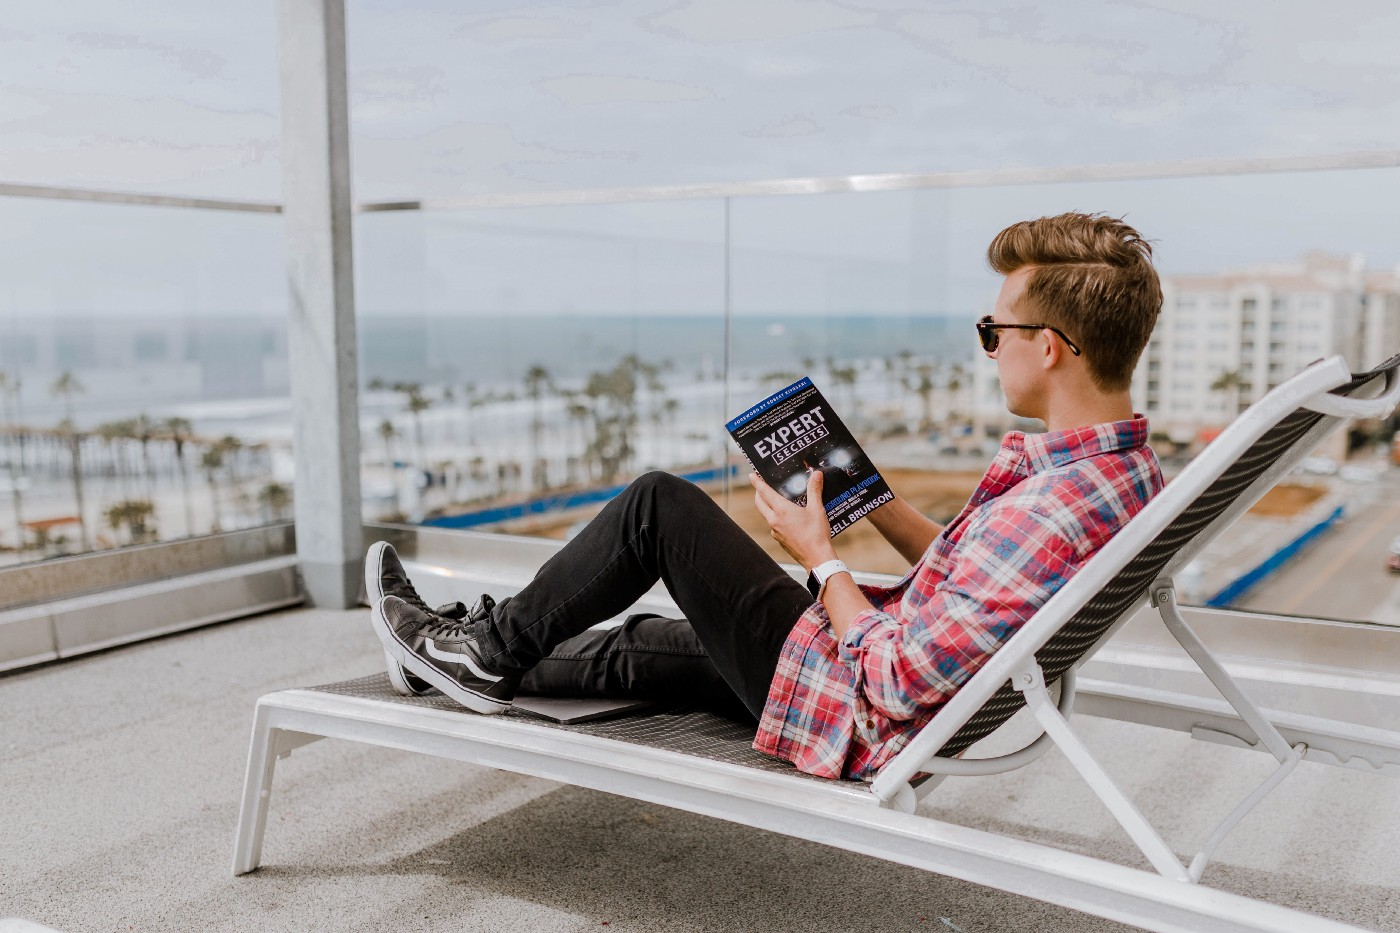 an influencer entrepreneur working from a rooftop